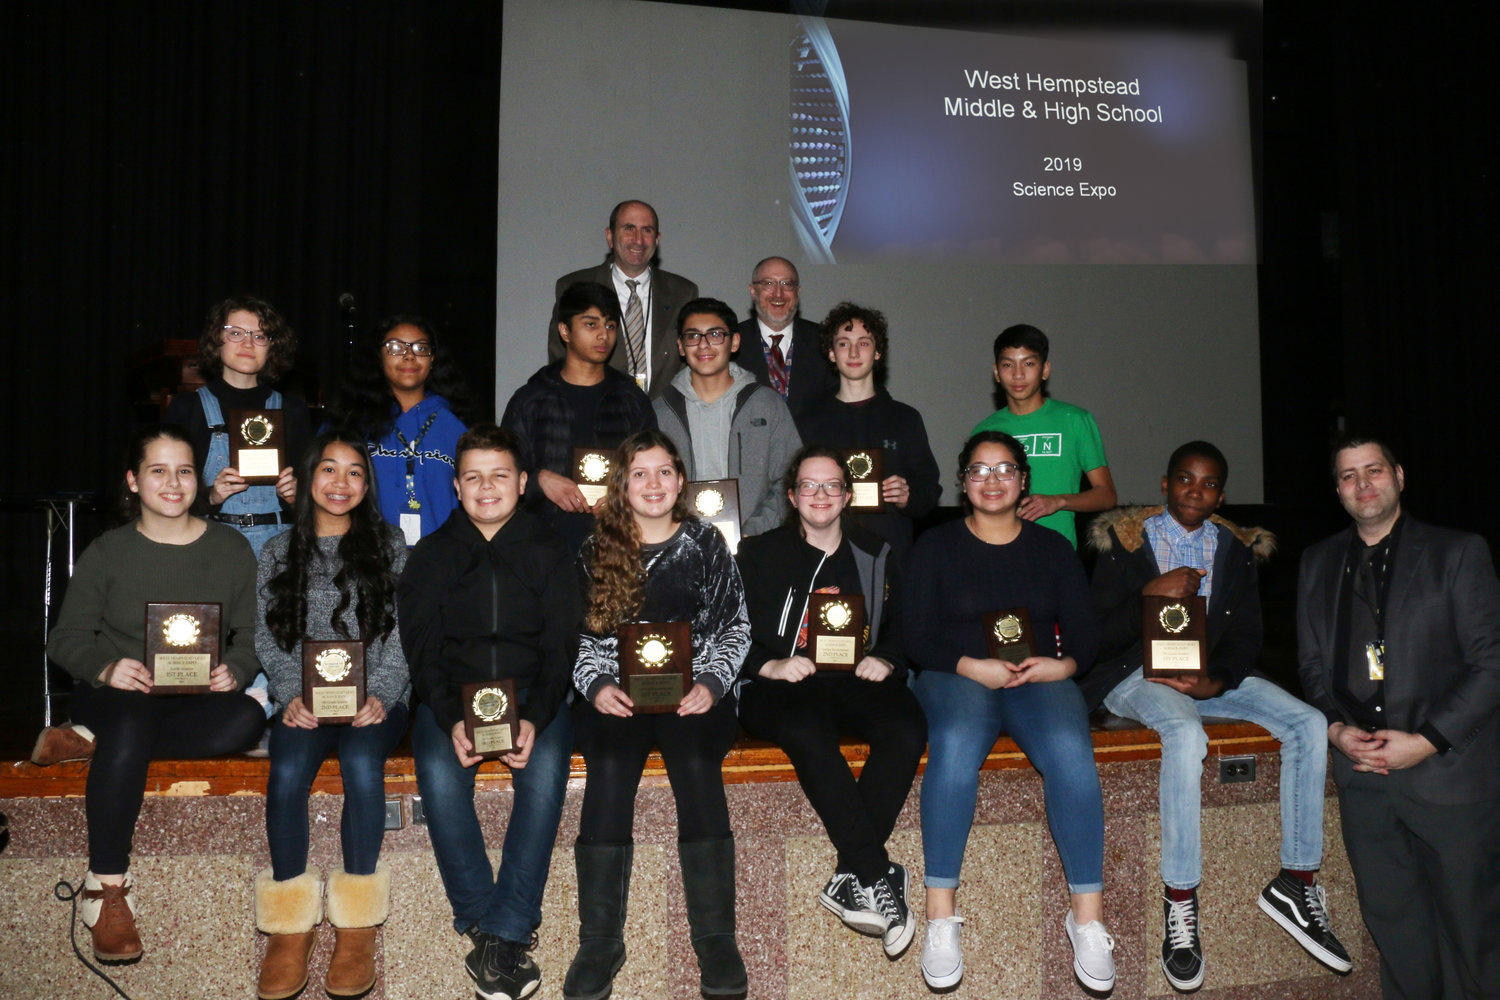 West Hempstead Middle school and high school students were presented with awards during this year's Science Expo on Jan. 10.